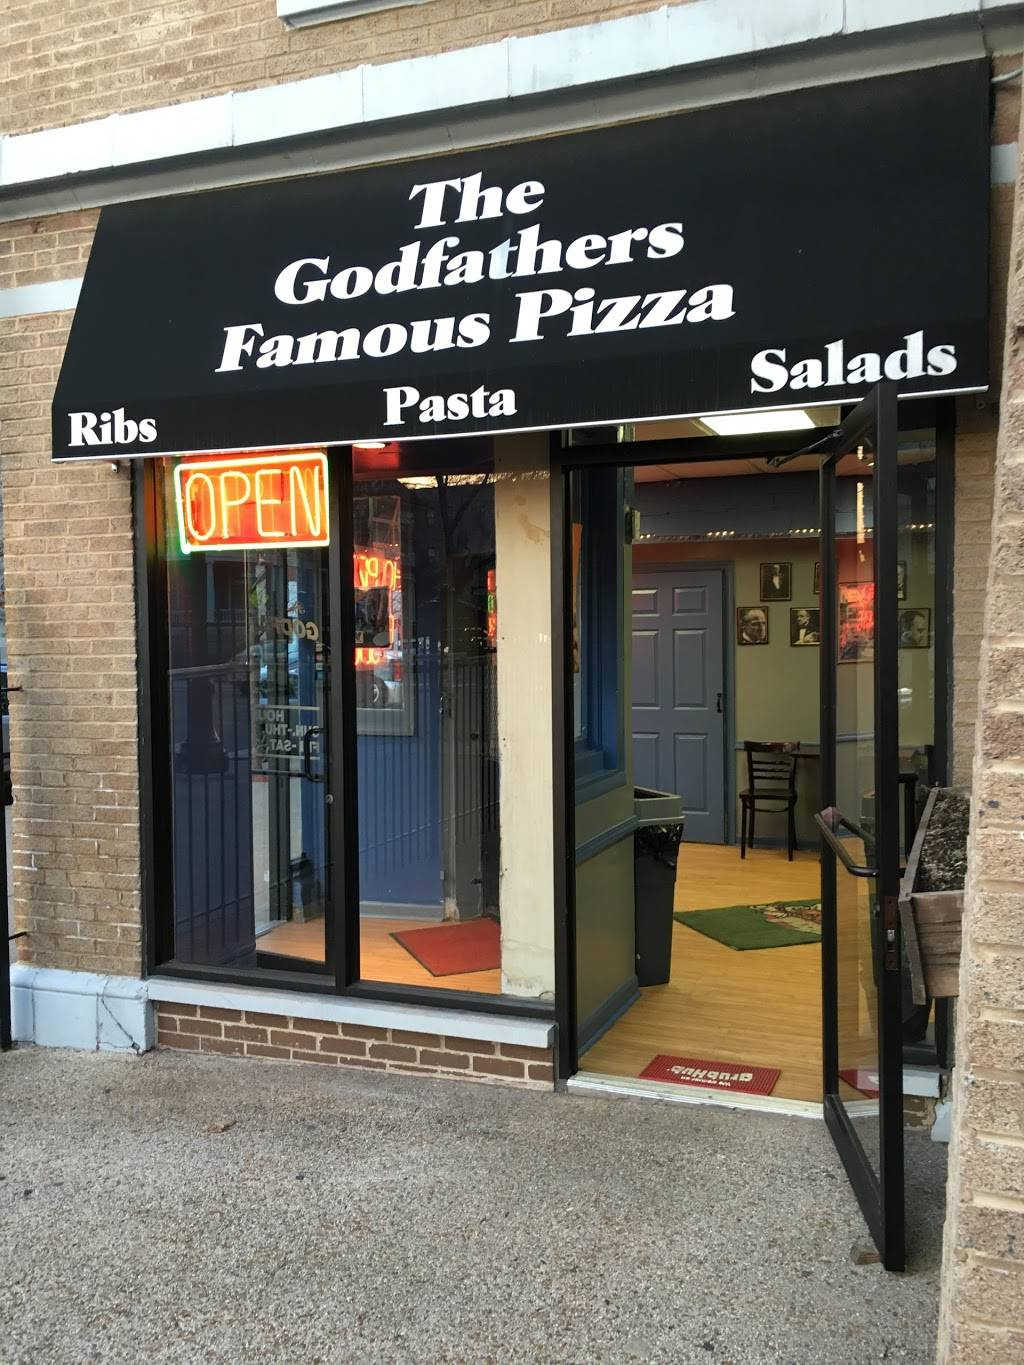 The Godfathers Famous Pizza | meal delivery | 1265 #A, 5506 W Wilson Ave, Chicago, IL 60640, USA | 7738788600 OR +1 773-878-8600